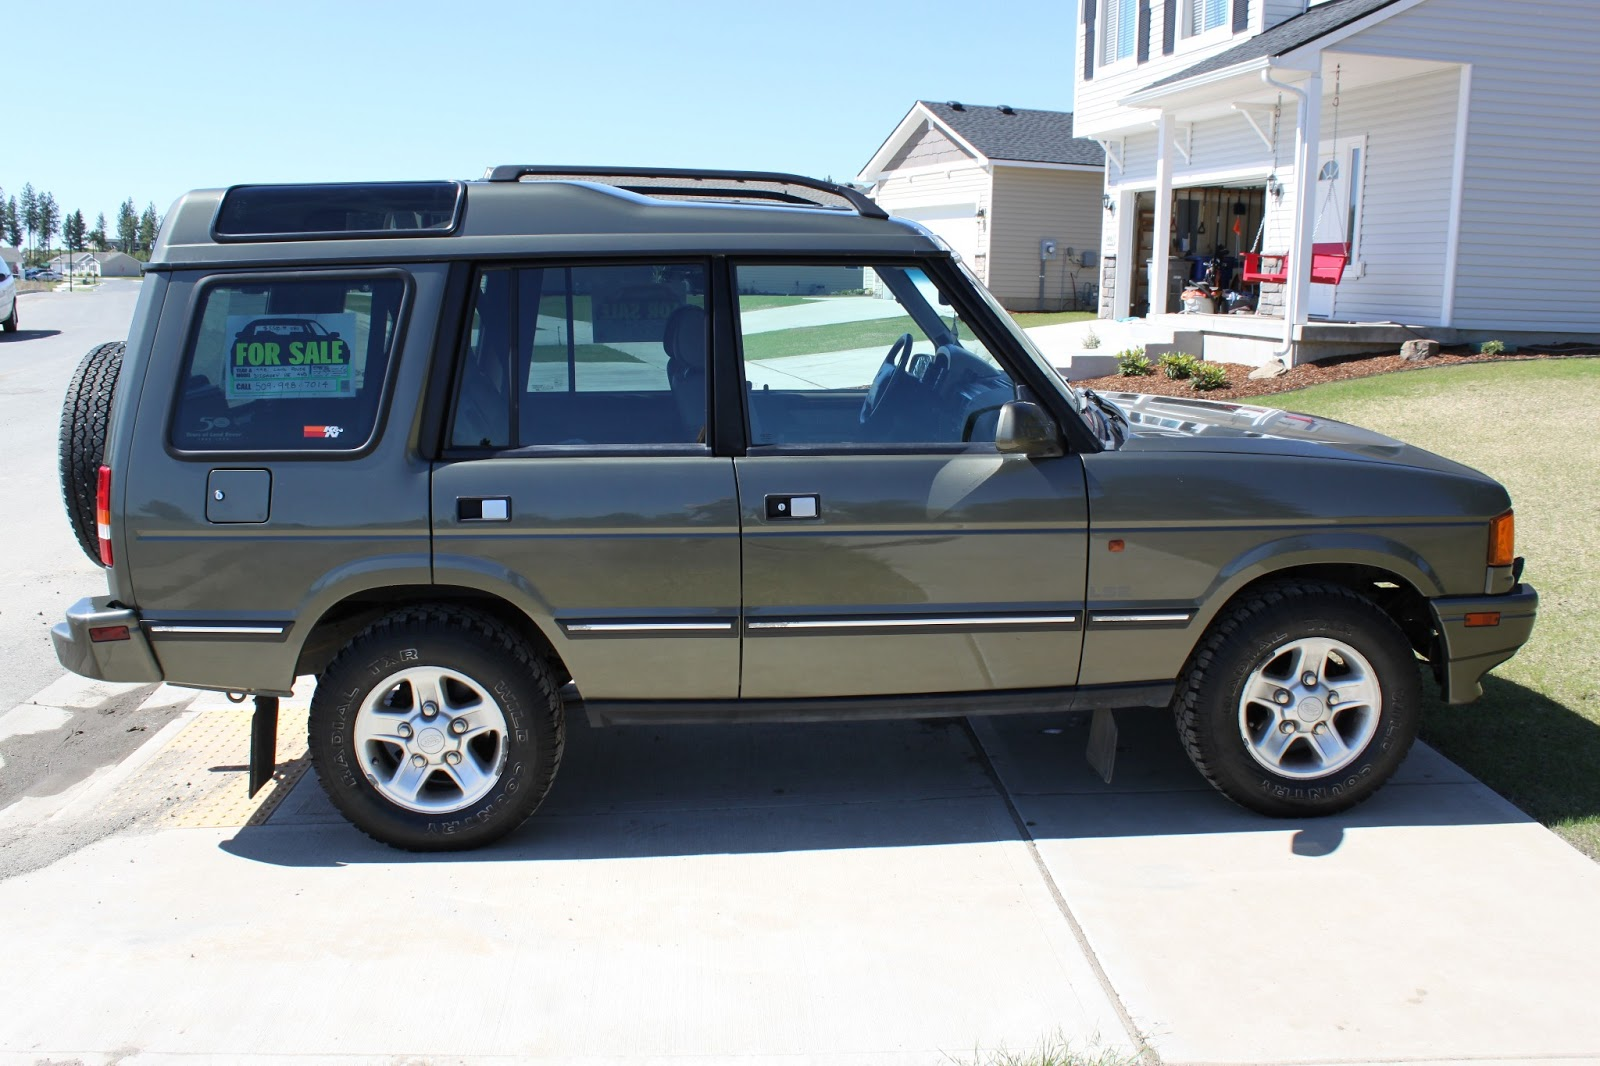 1998 Landrover Discovery Lse 50th Anniversary Edition 40l V8 4x4 Land Rover 4wd